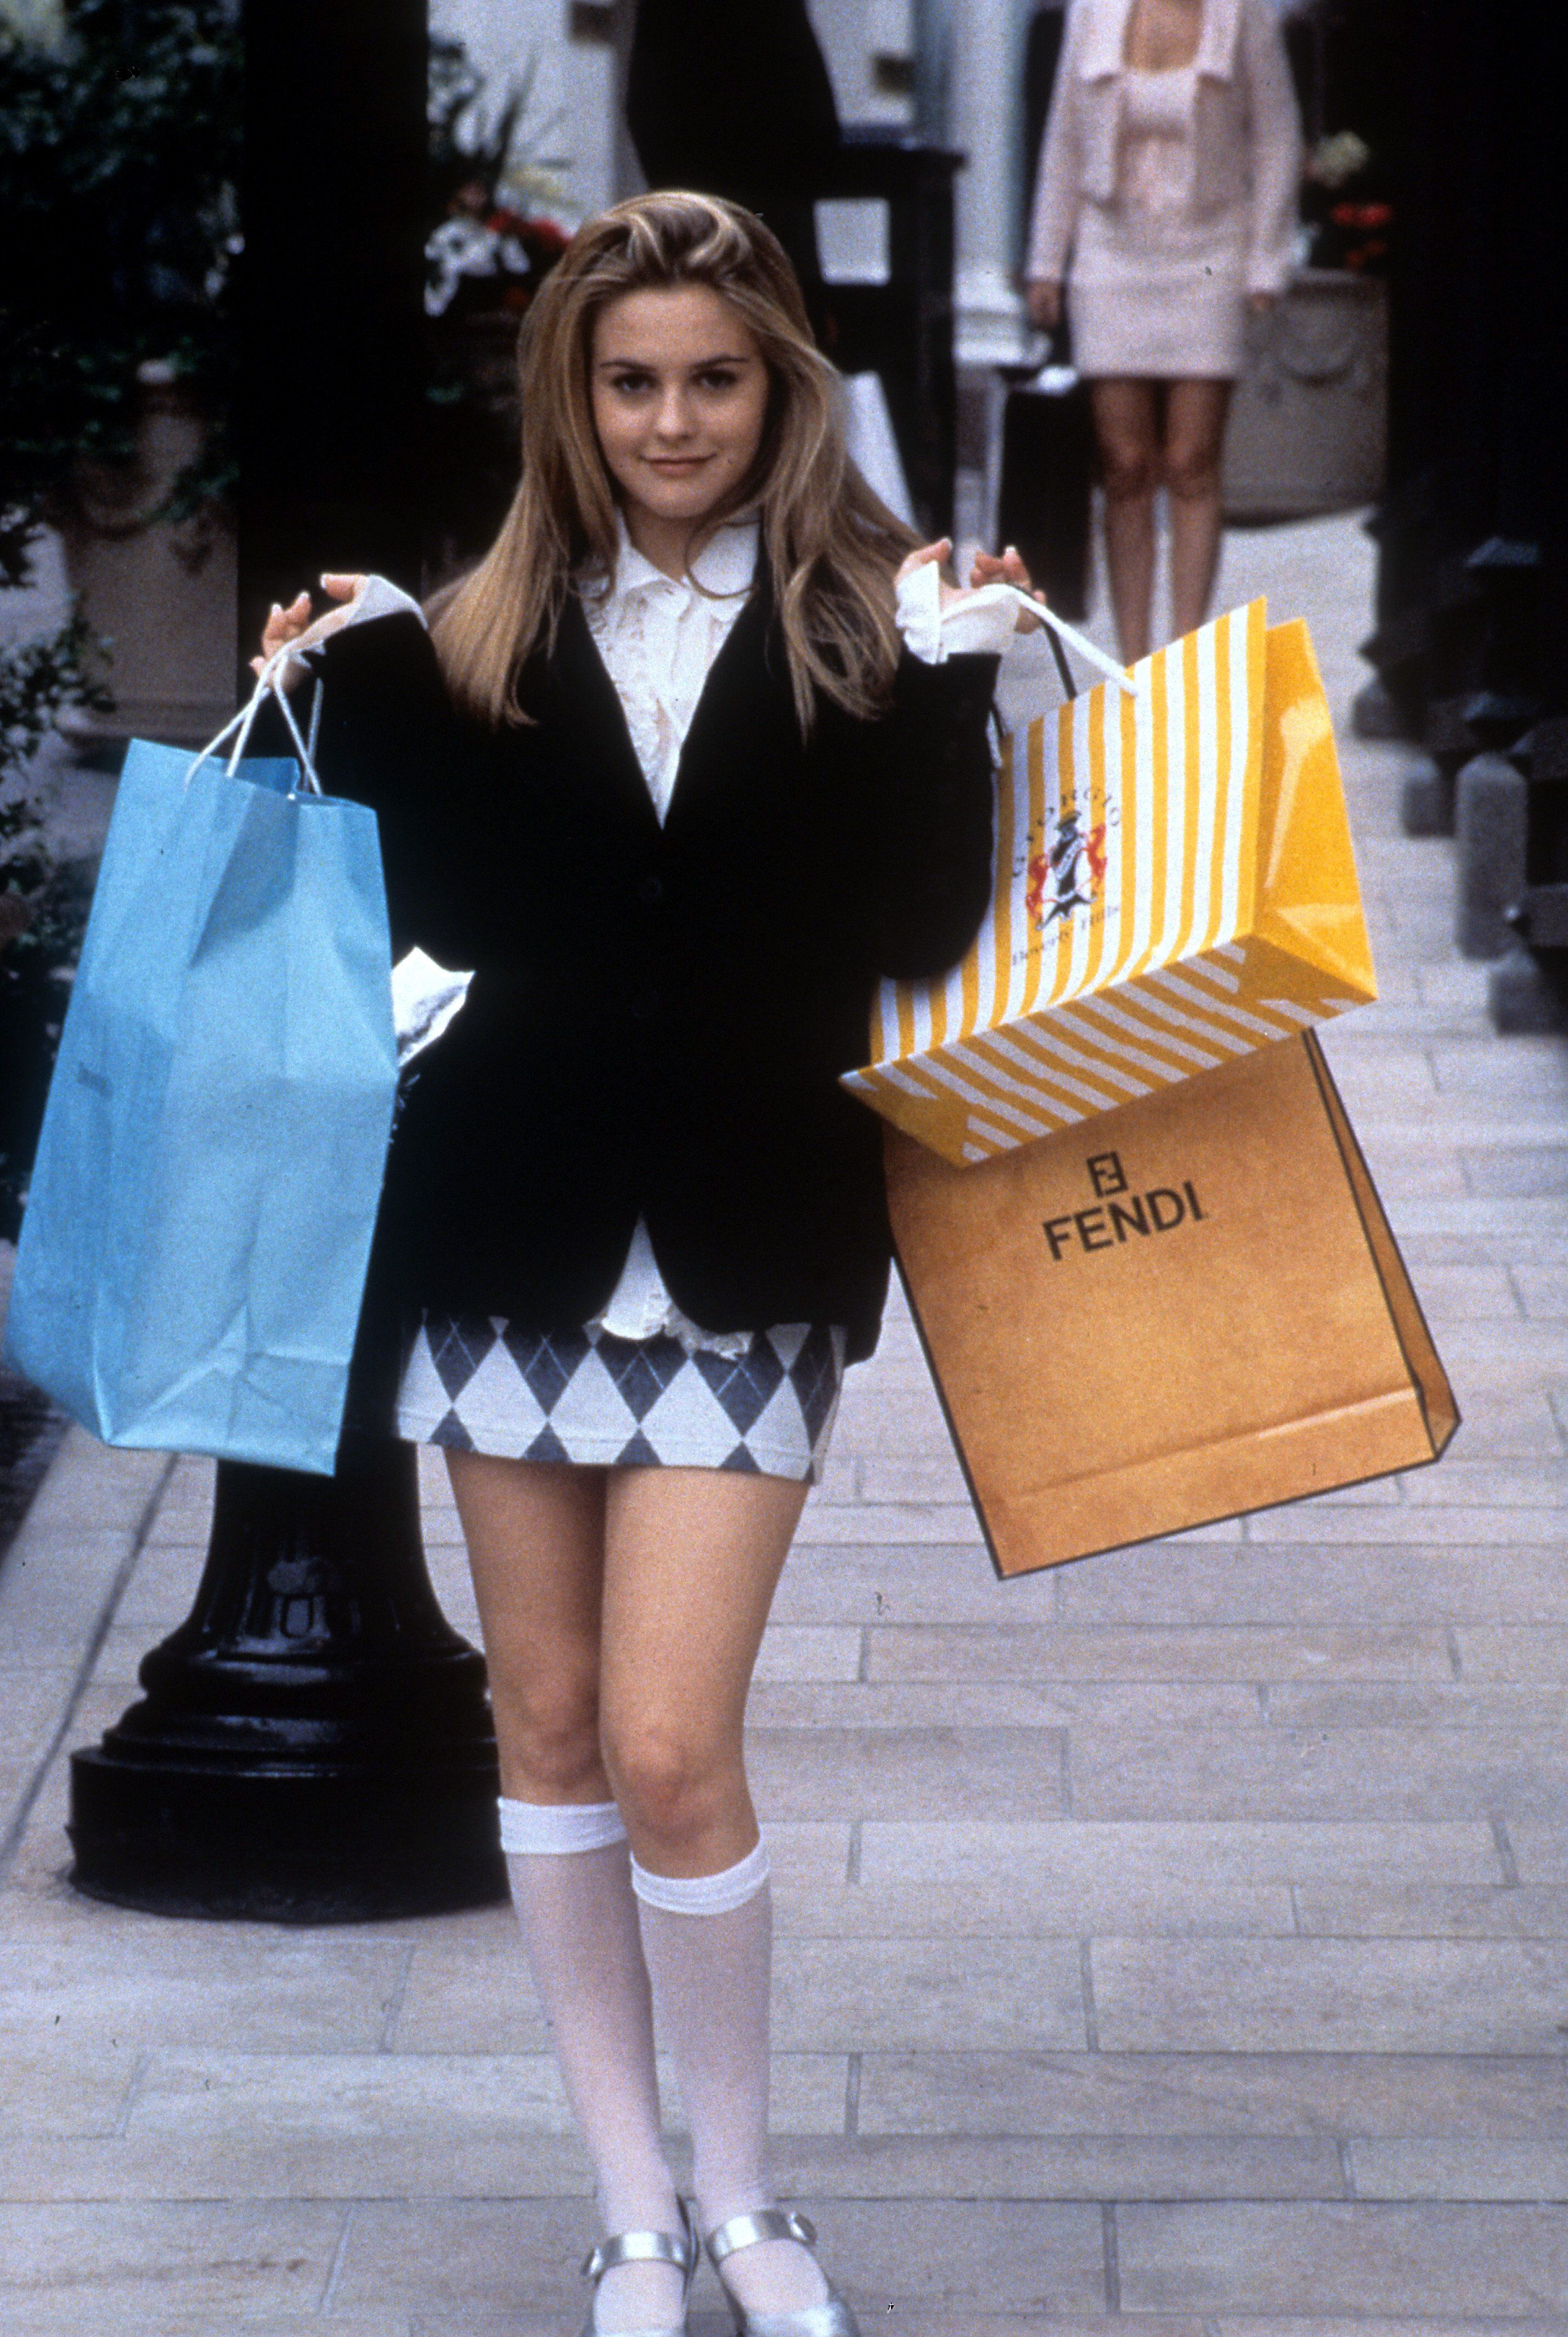 Is 'Clueless' A Romantic Comedy? A